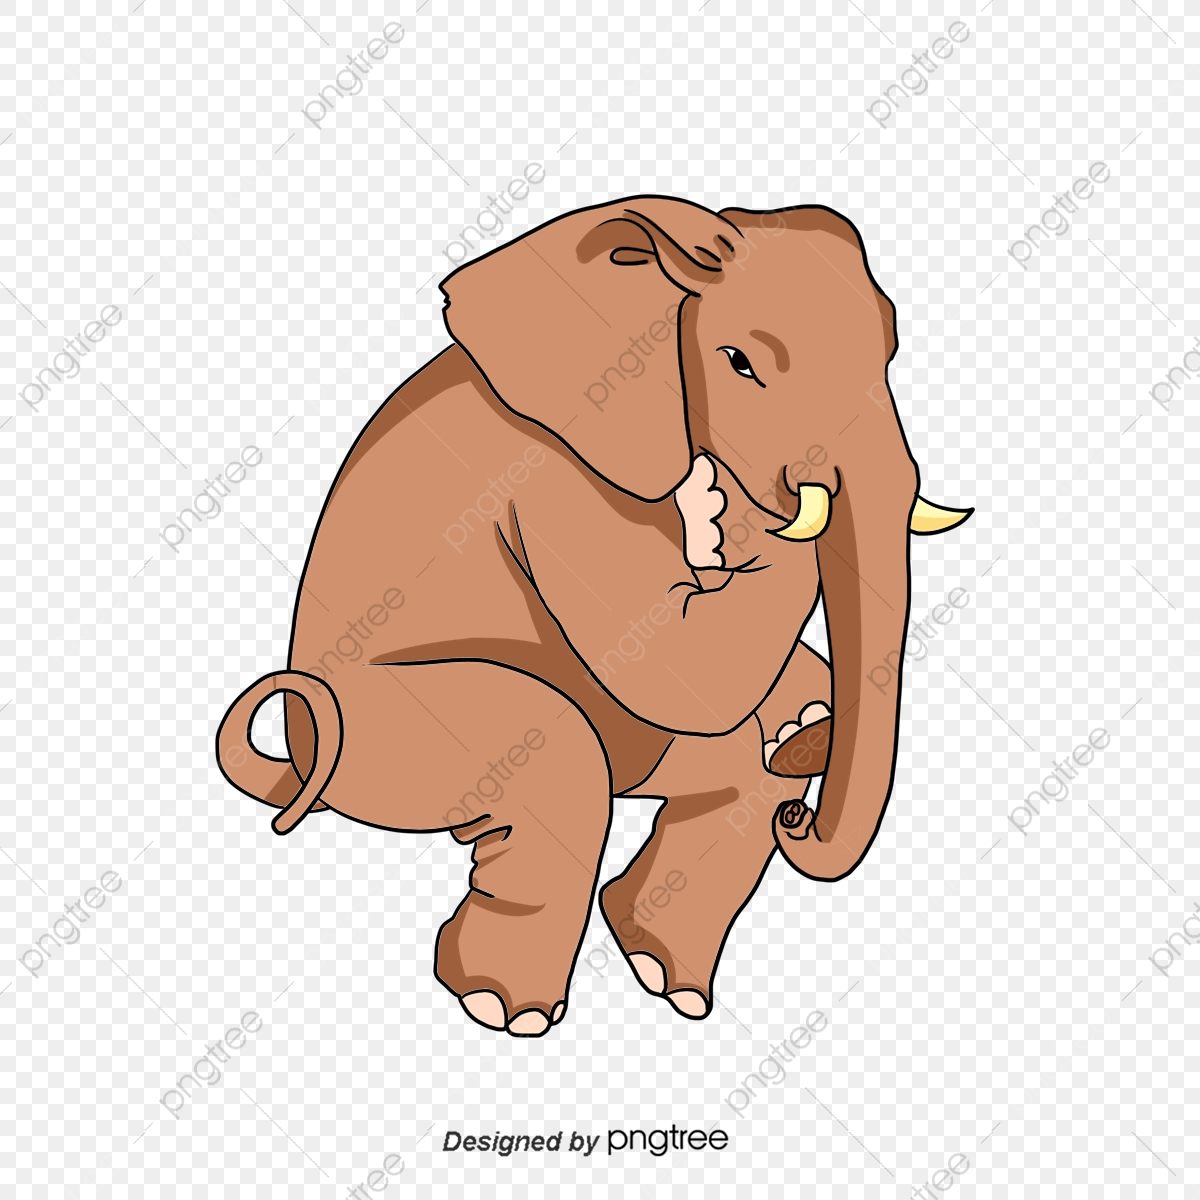 The Thinking Elephant Clipart Clip Art Cartoon Sitting Posture Png Transparent Clipart Image And Psd File For Free Download Valentine's day marriage love, love border , heart illustrations png clipart. https pngtree com freepng the thinking elephant clipart 4153166 html